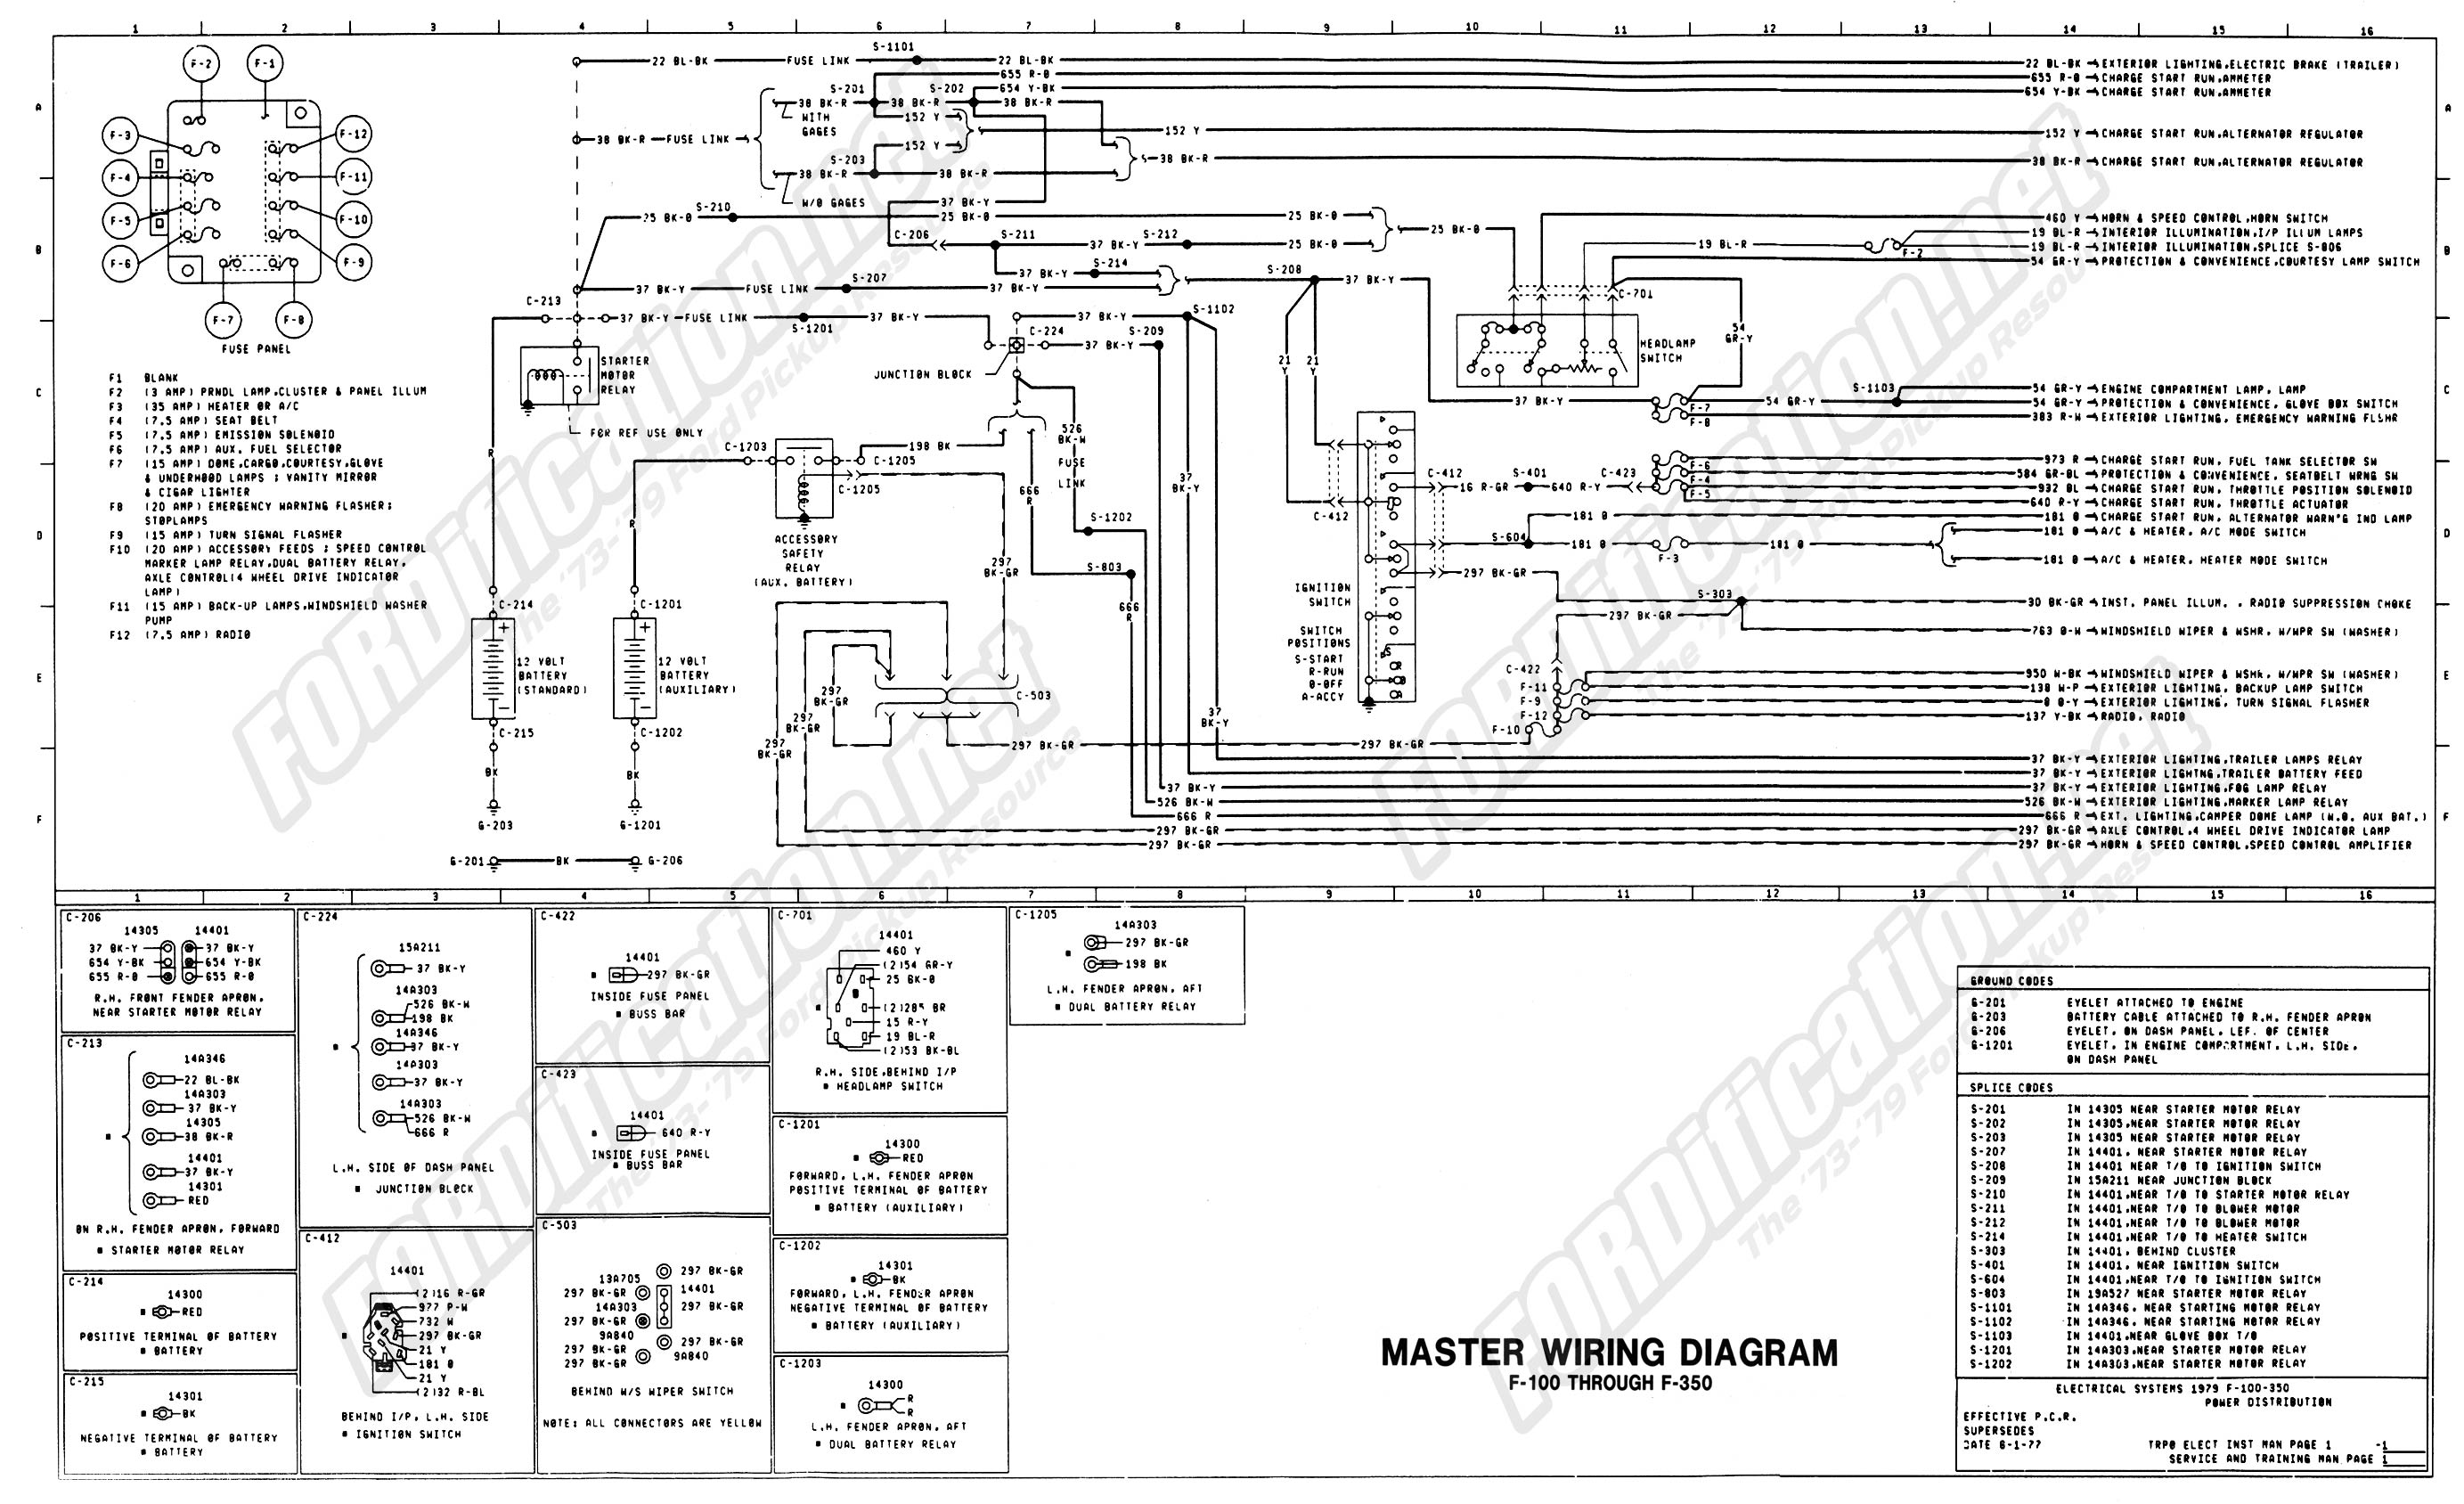 1973 1979 ford truck wiring diagrams schematics fordification net rh fordification net Ignition Switch Wiring Diagram Color Ford Electronic Distributor Wiring Diagram